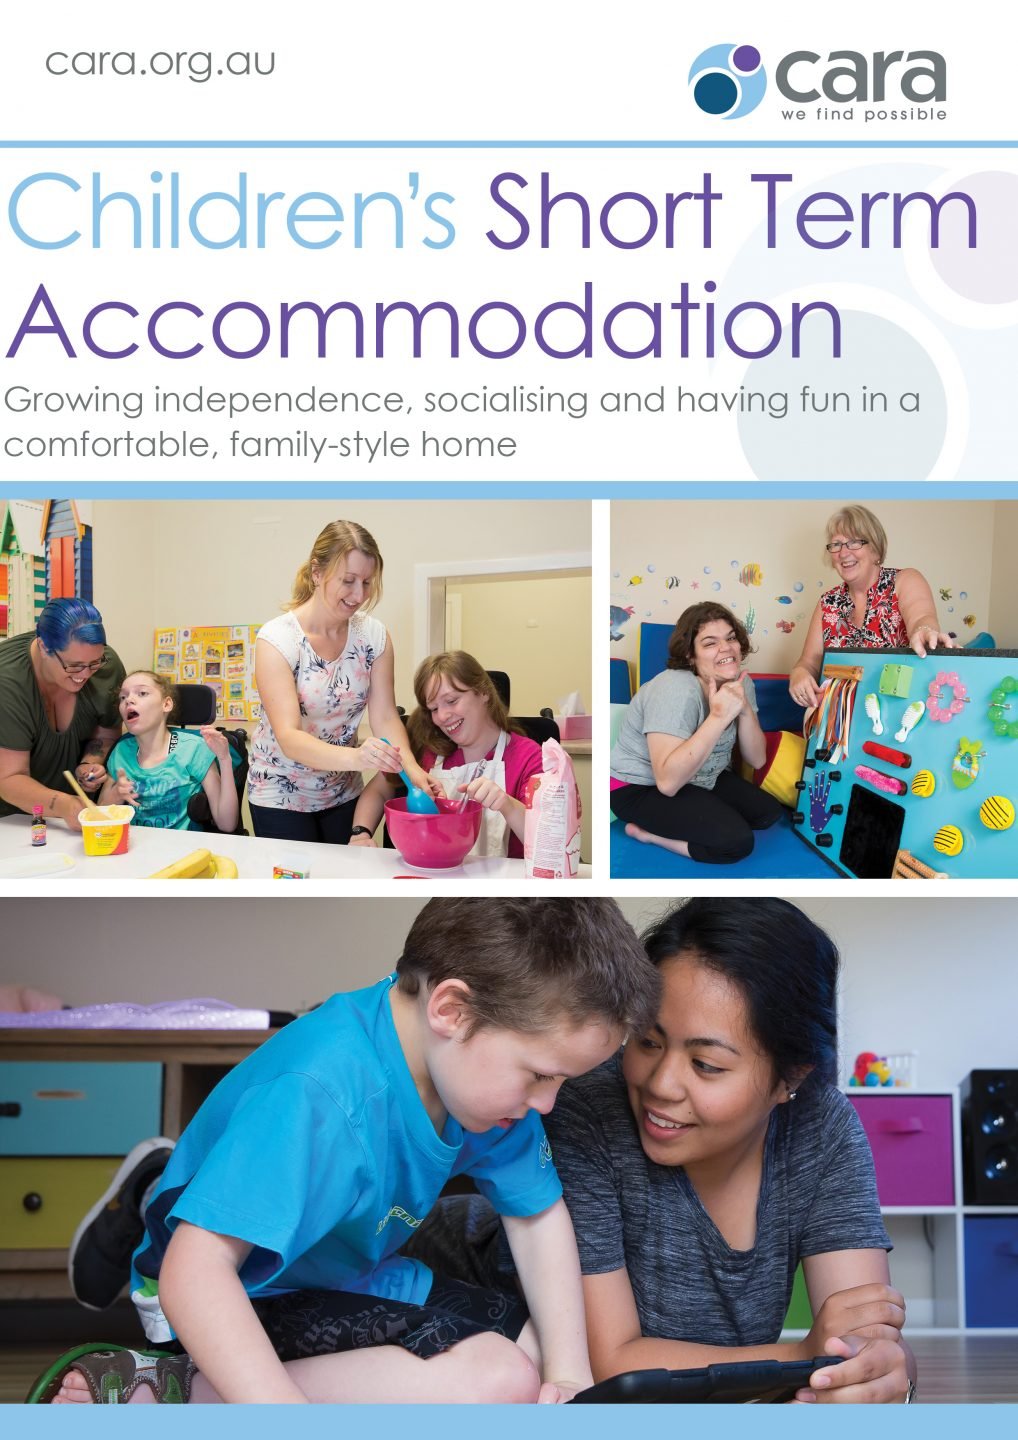 Children's Short Term Accommodation